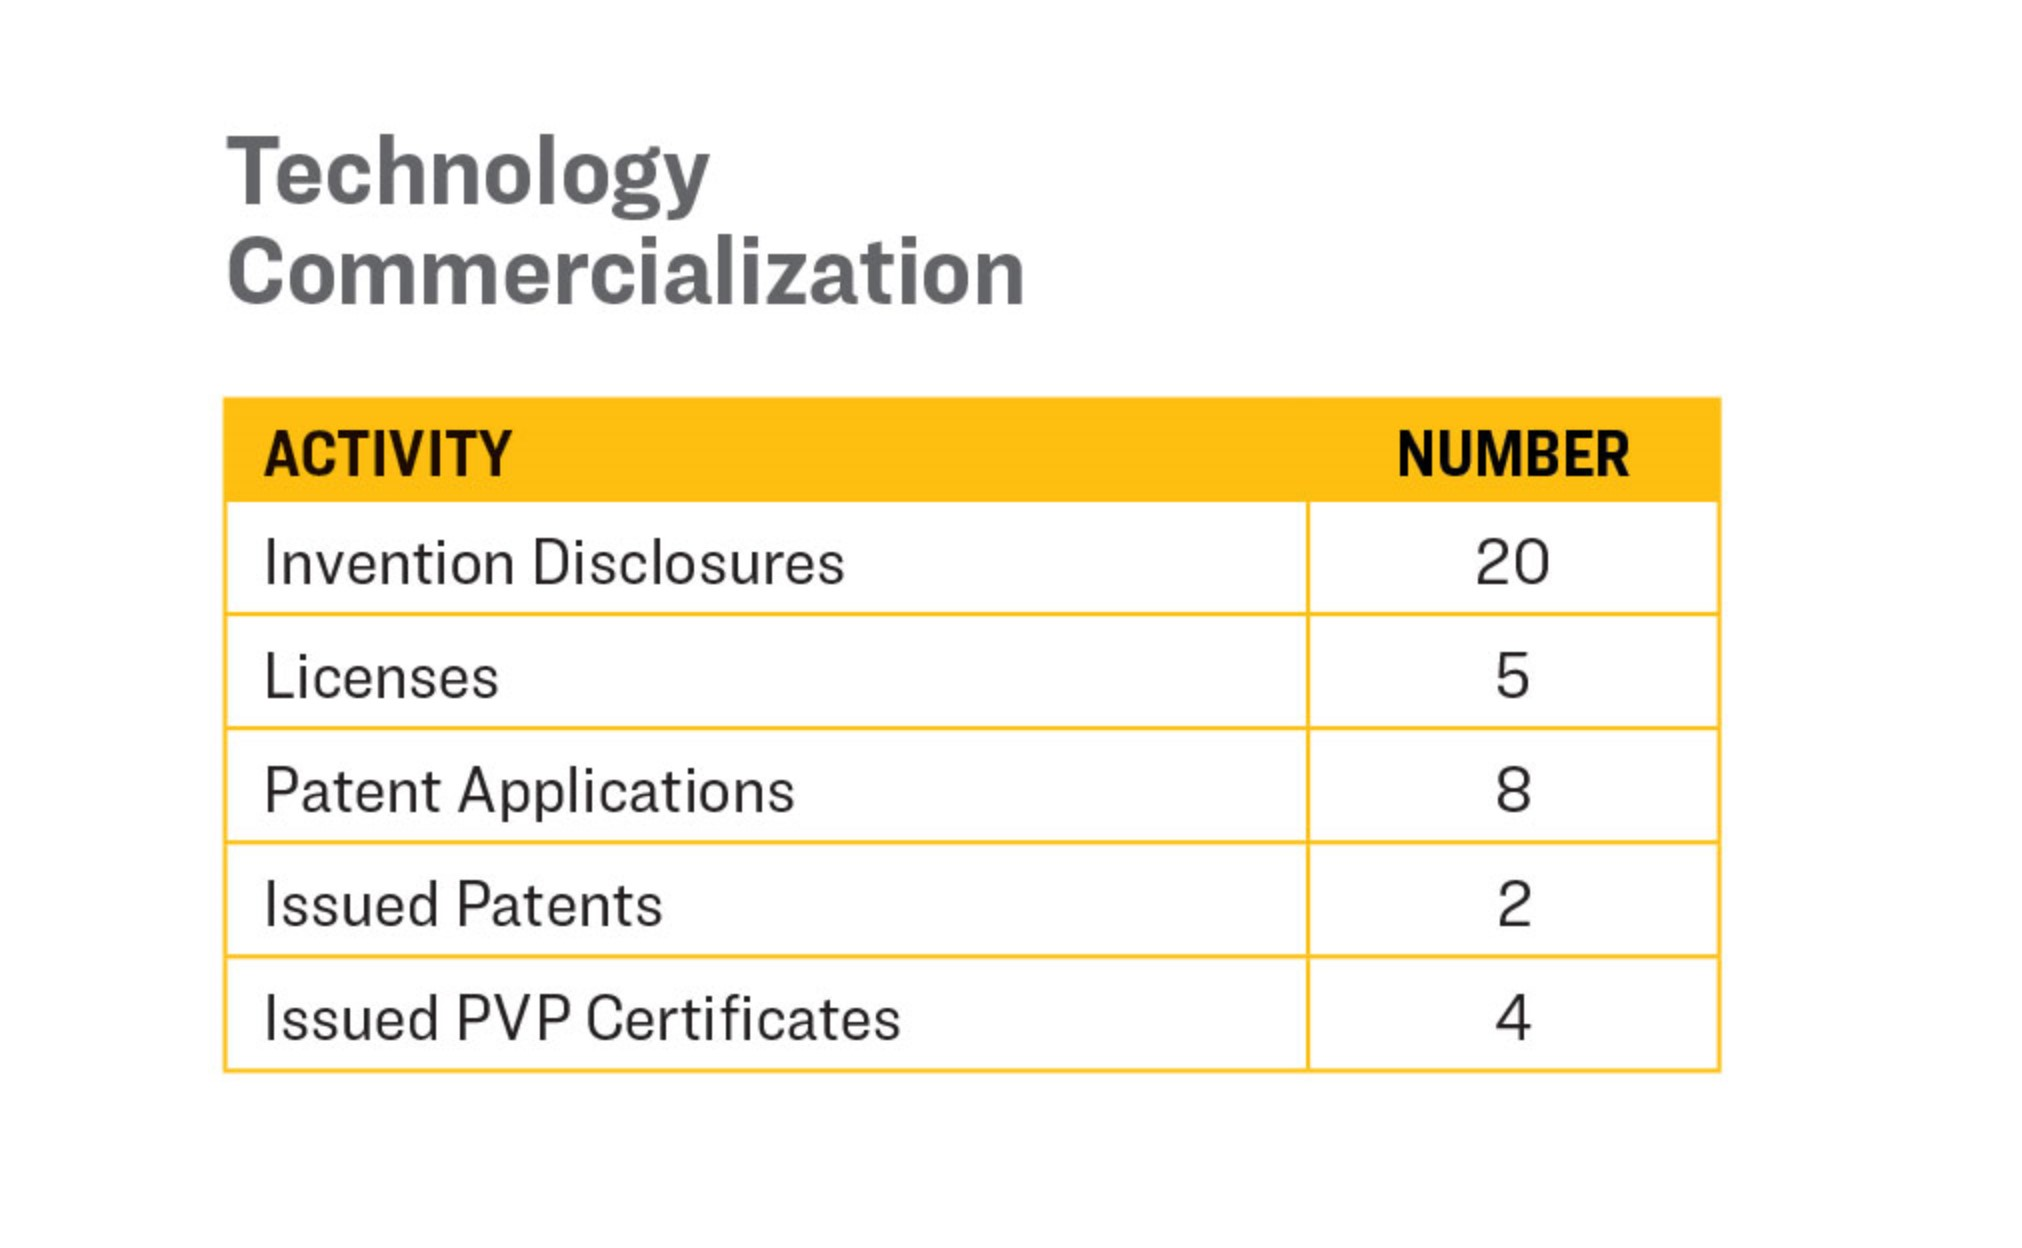 A table labeled Technology Commercialization.